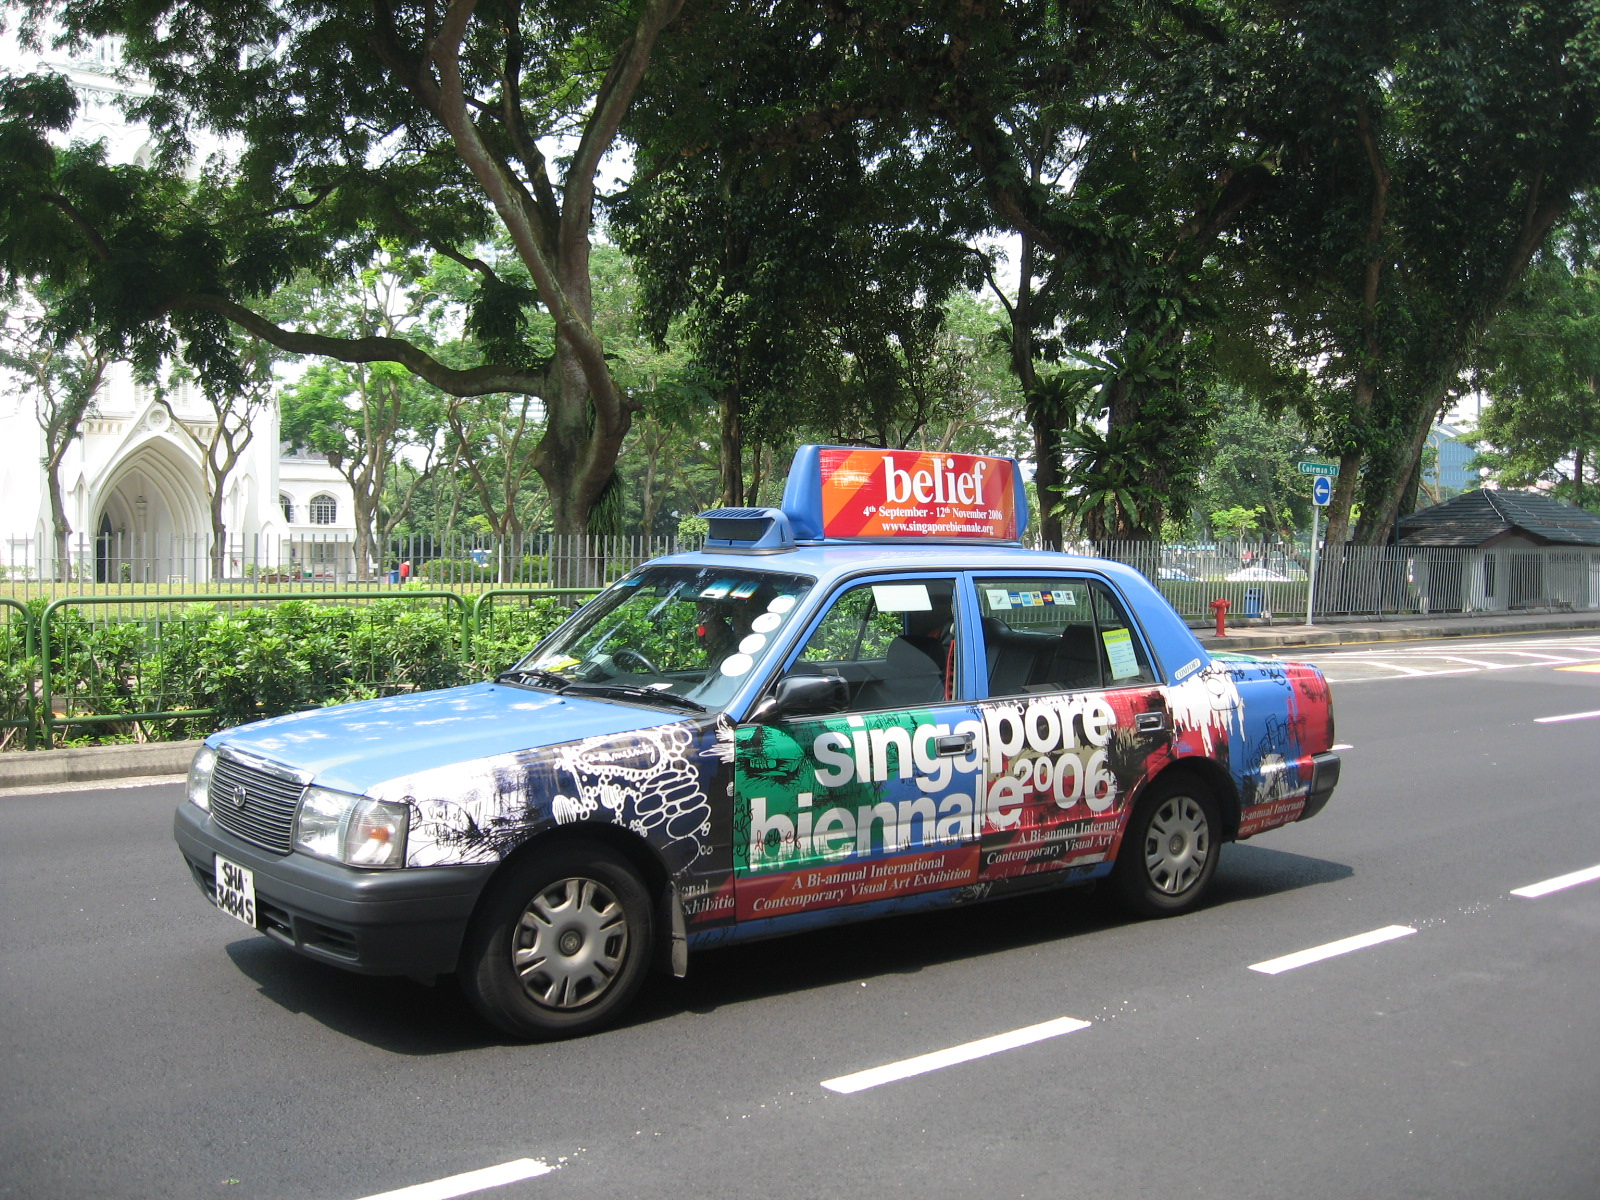 File:COMFORT TAXI-SB2006 ad.JPG - Wikimedia Commons